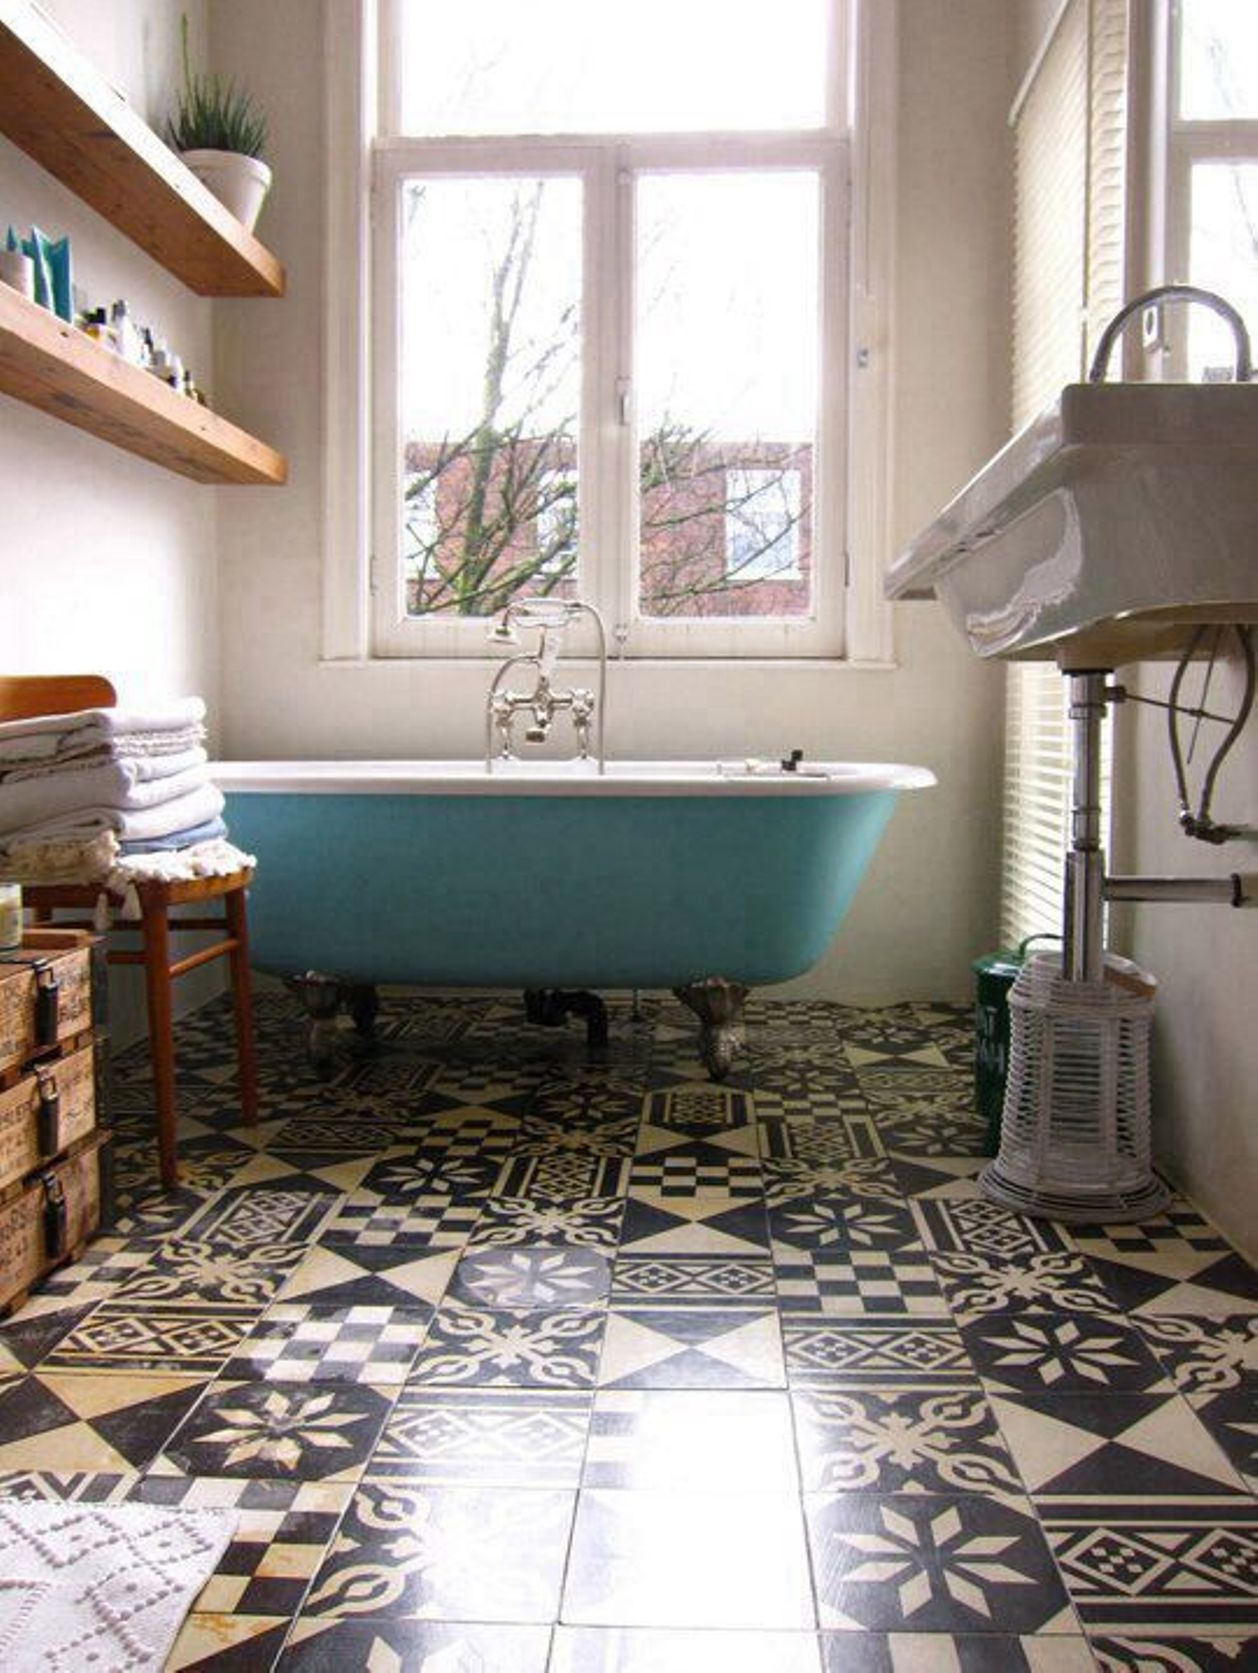 Home Retro Bathroom Floor Tile Retro Bathroom Floor Tile